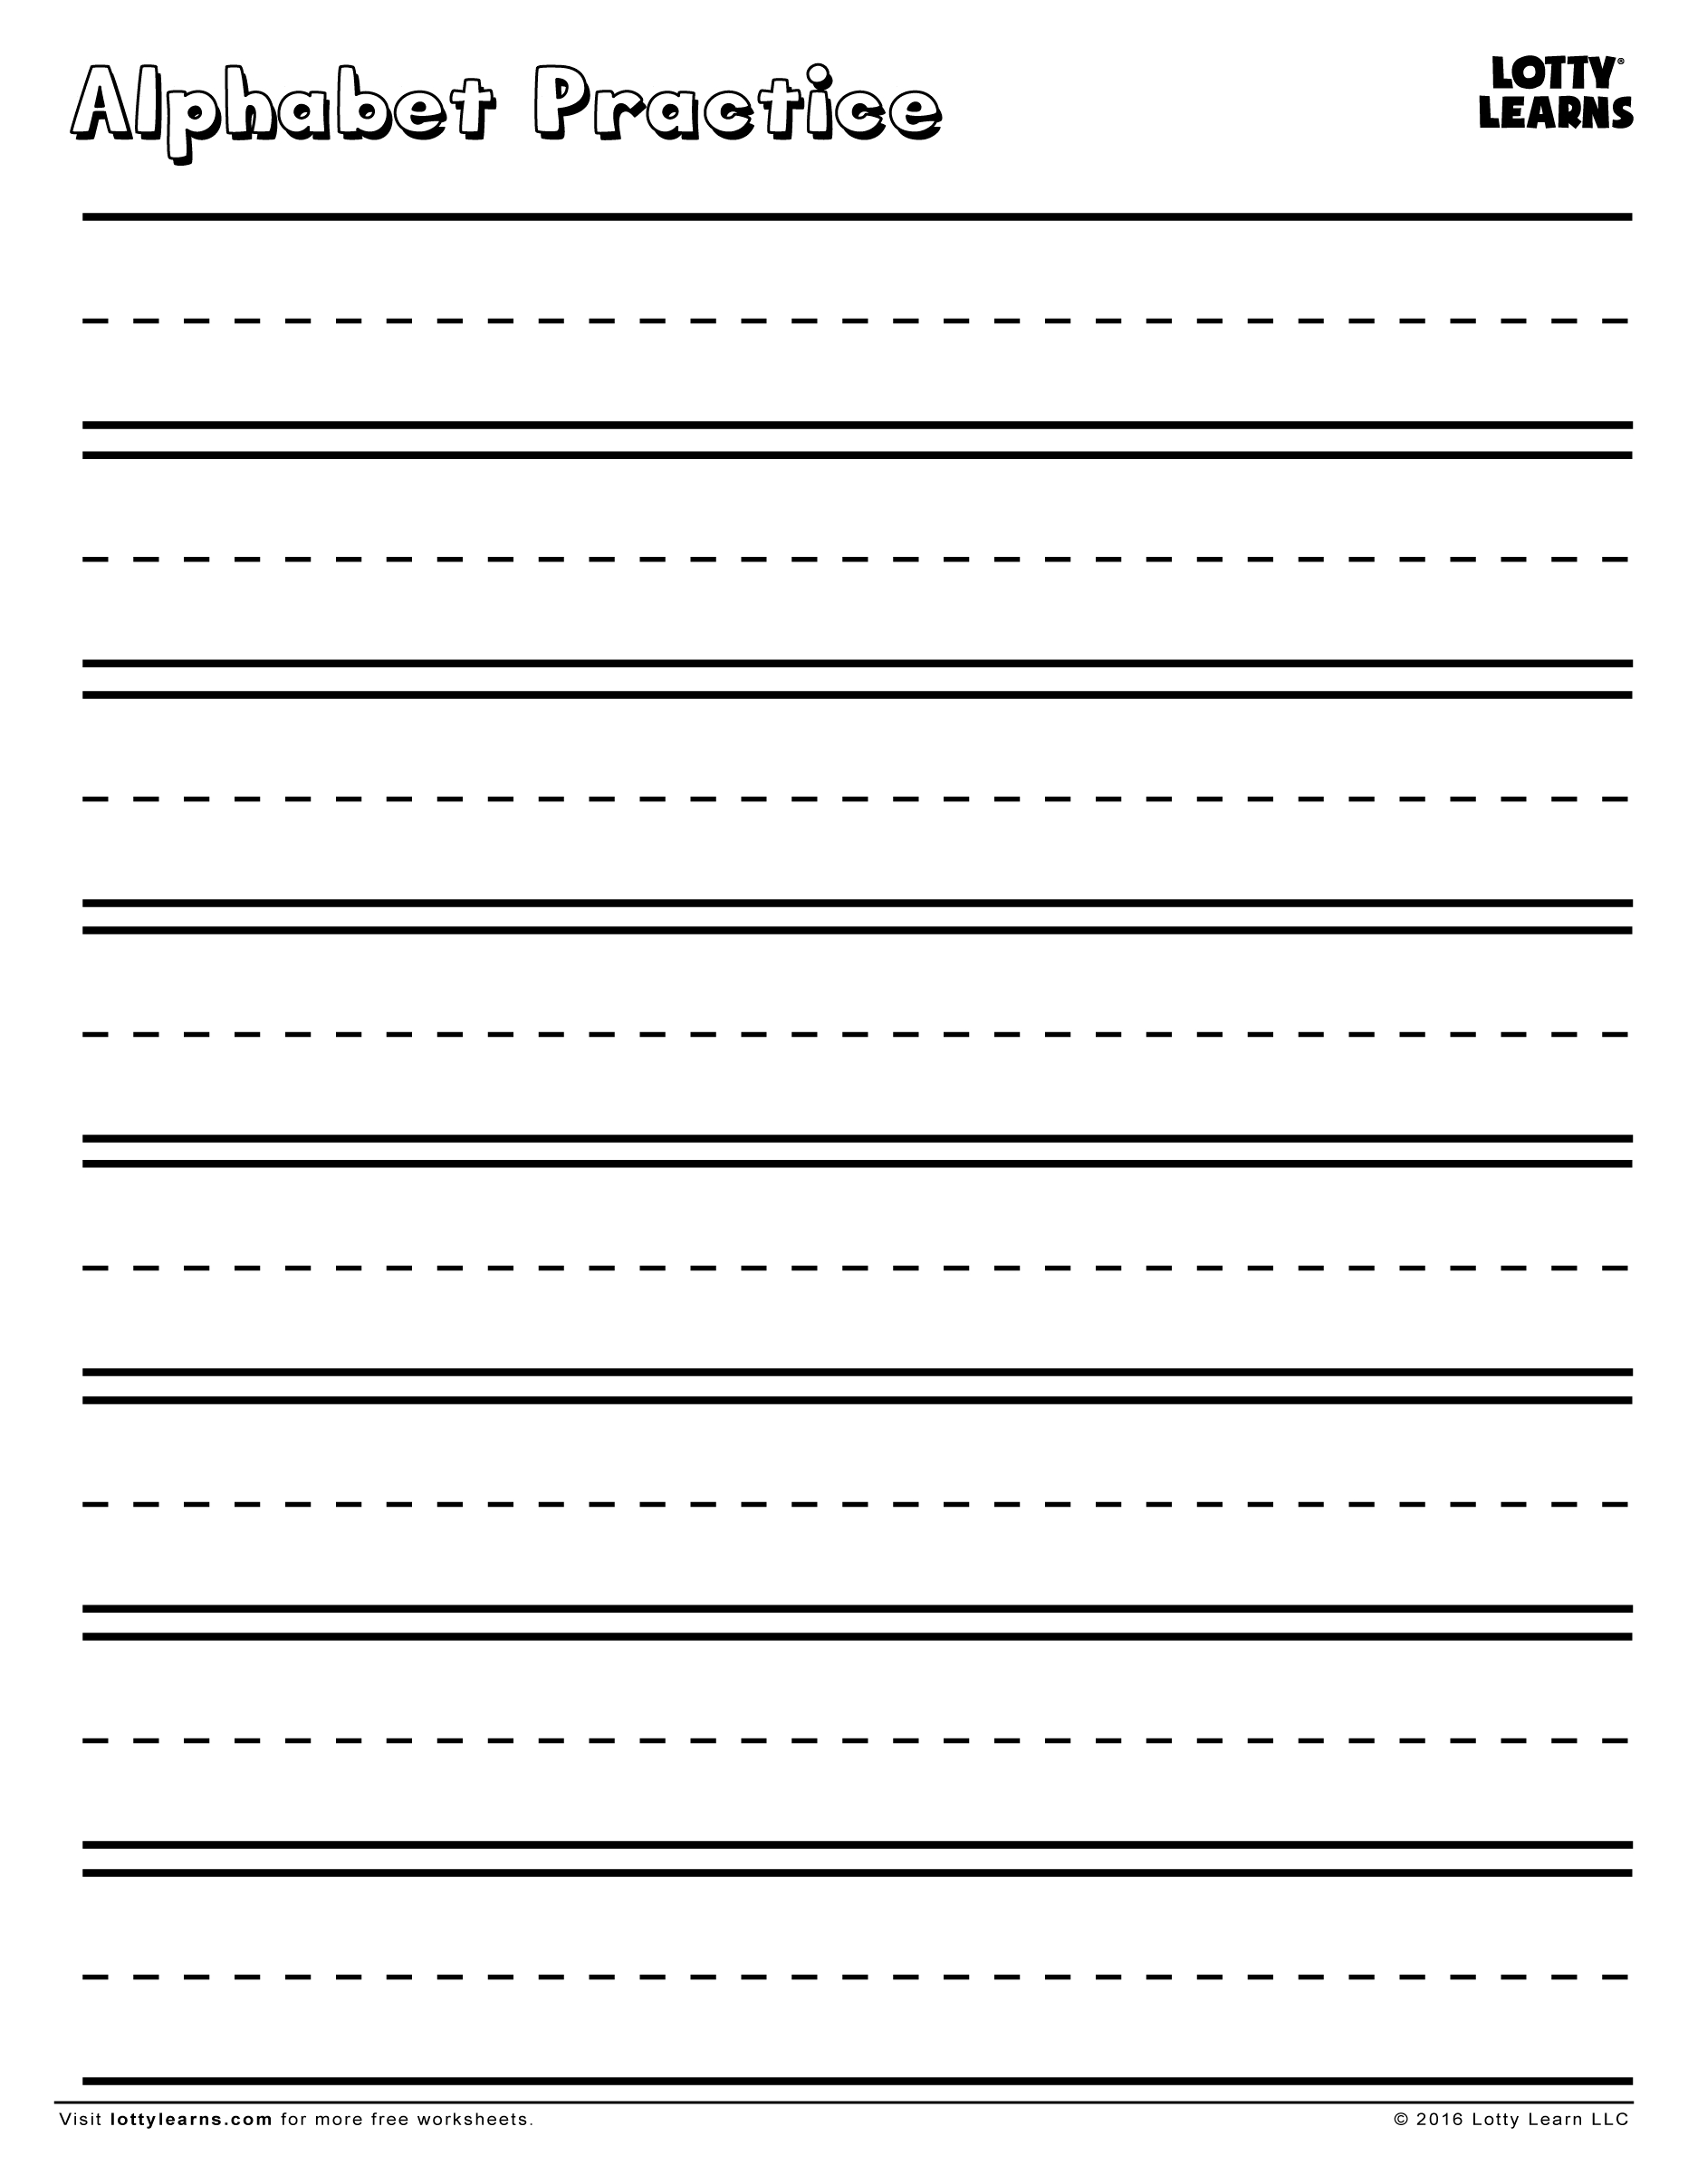 Practice Makes Perfect! Blank Alphabet Practice Sheet | Lotty Learns - Blank Handwriting Worksheets Printable Free